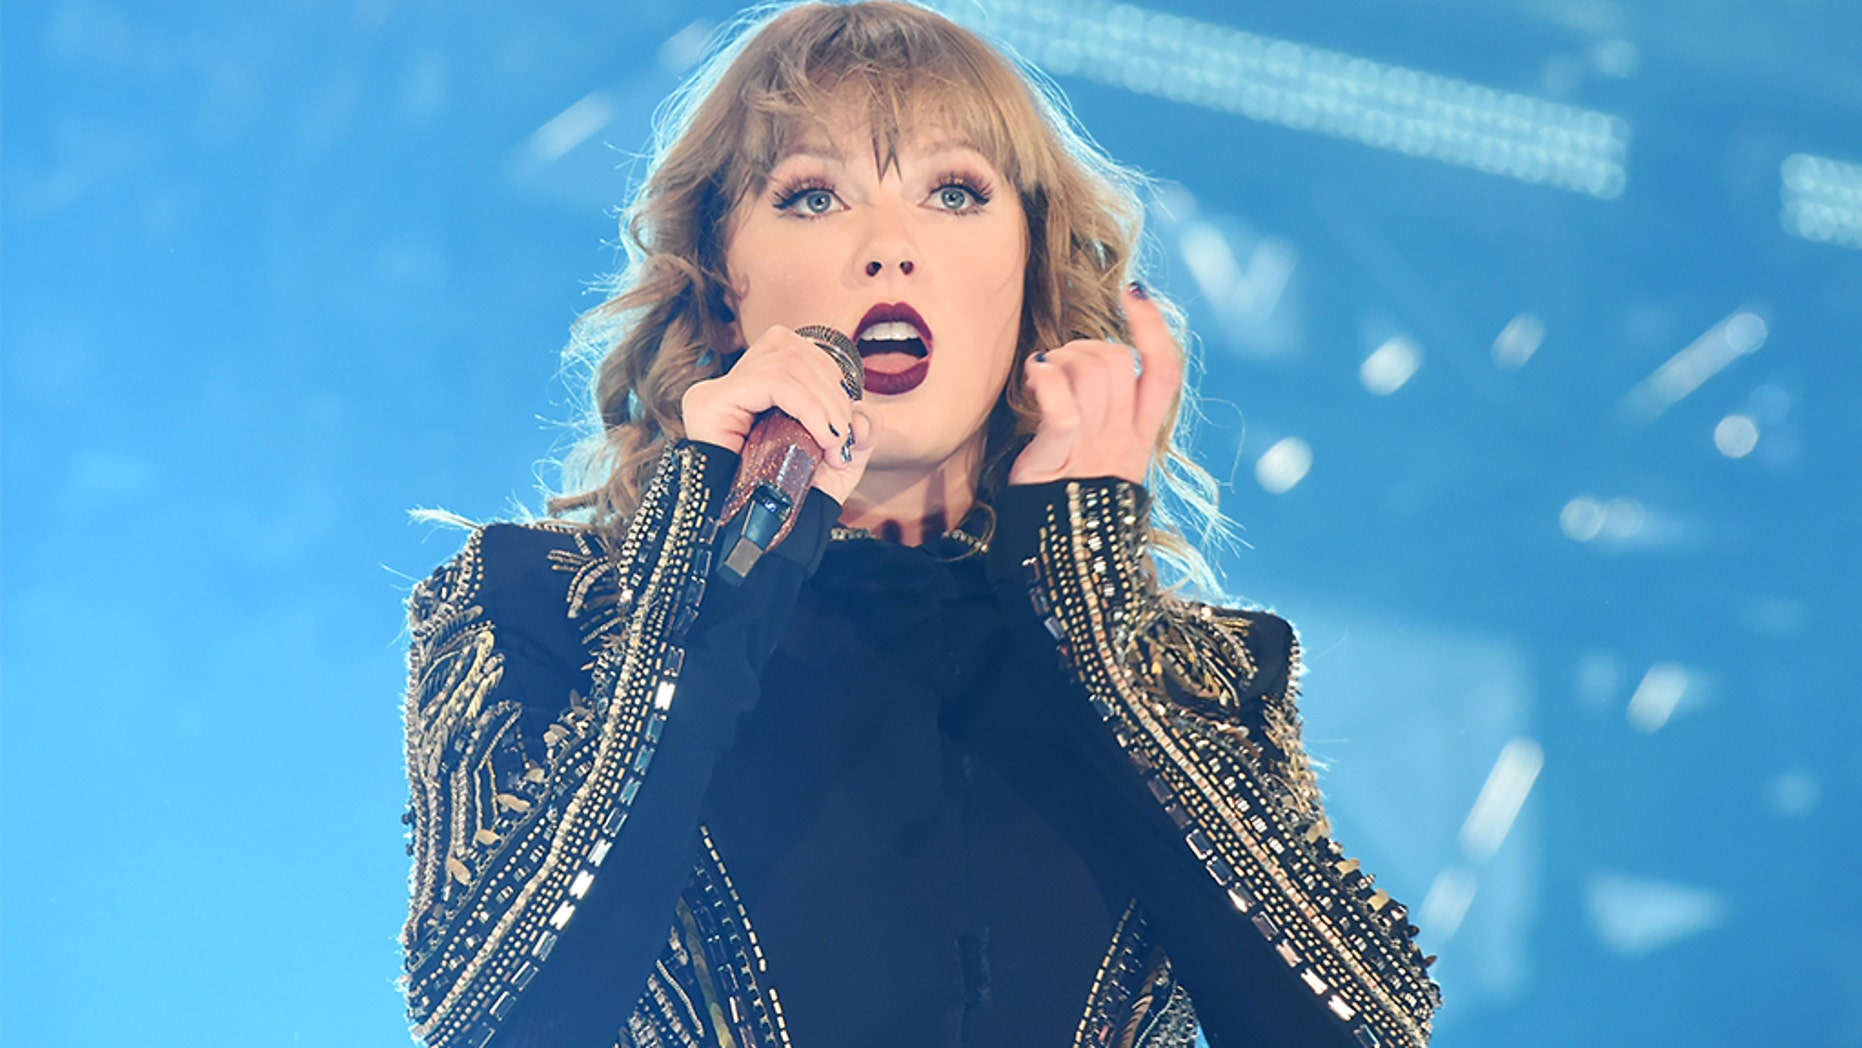 Taylor Swift used facial recognition at a concert to detect stalkers